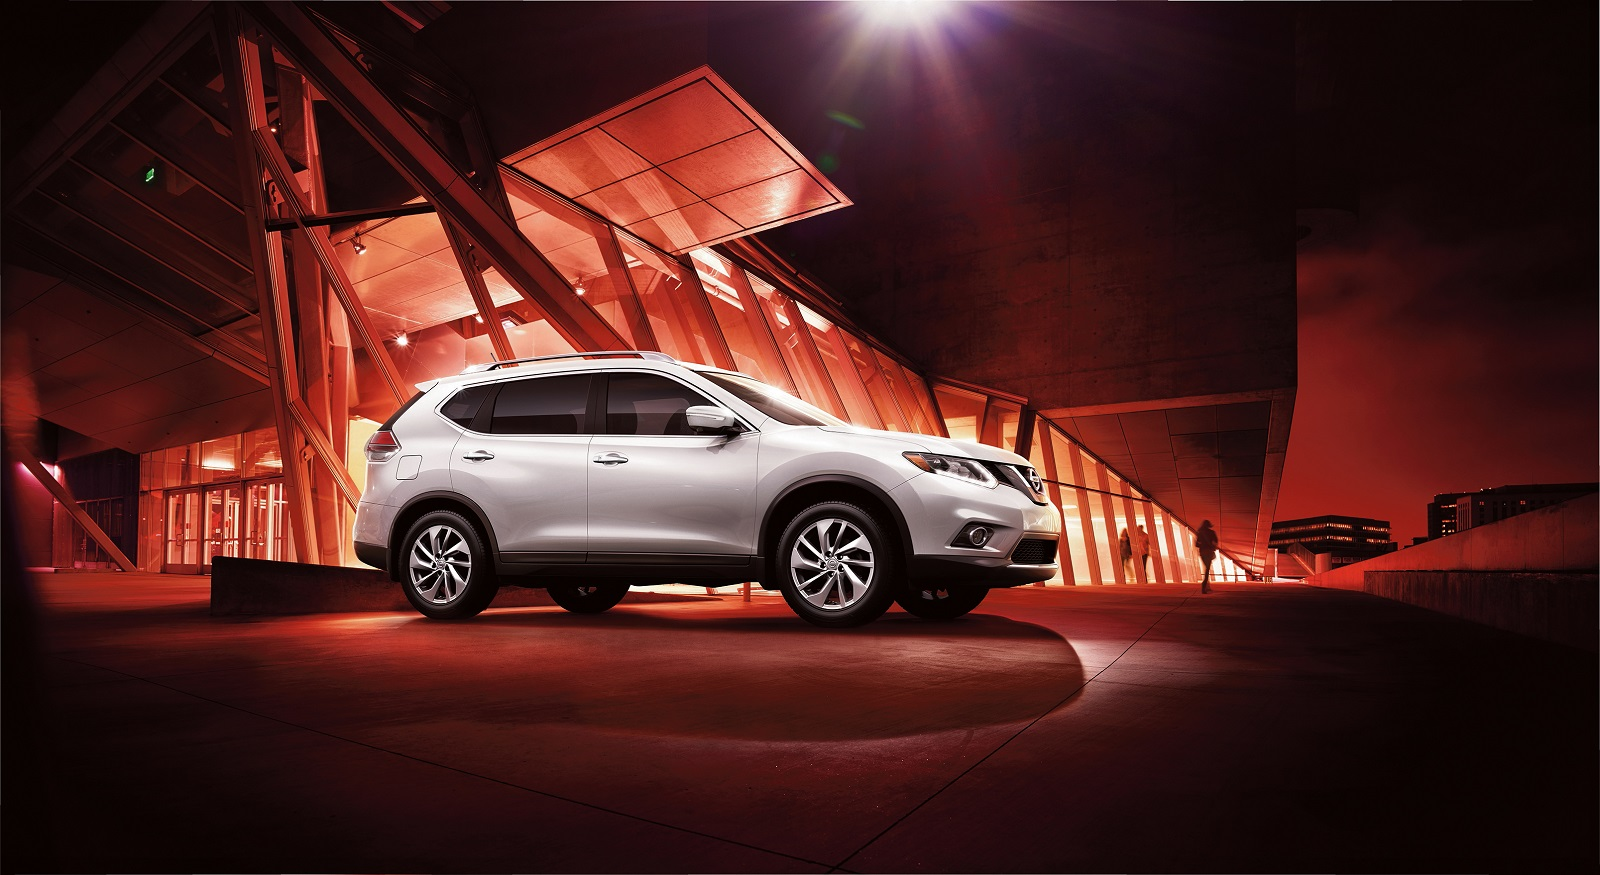 2014 2016 Nissan Rogue Recalled For Liftgate Corrosion, Nearly 109,000  Vehicles Affected